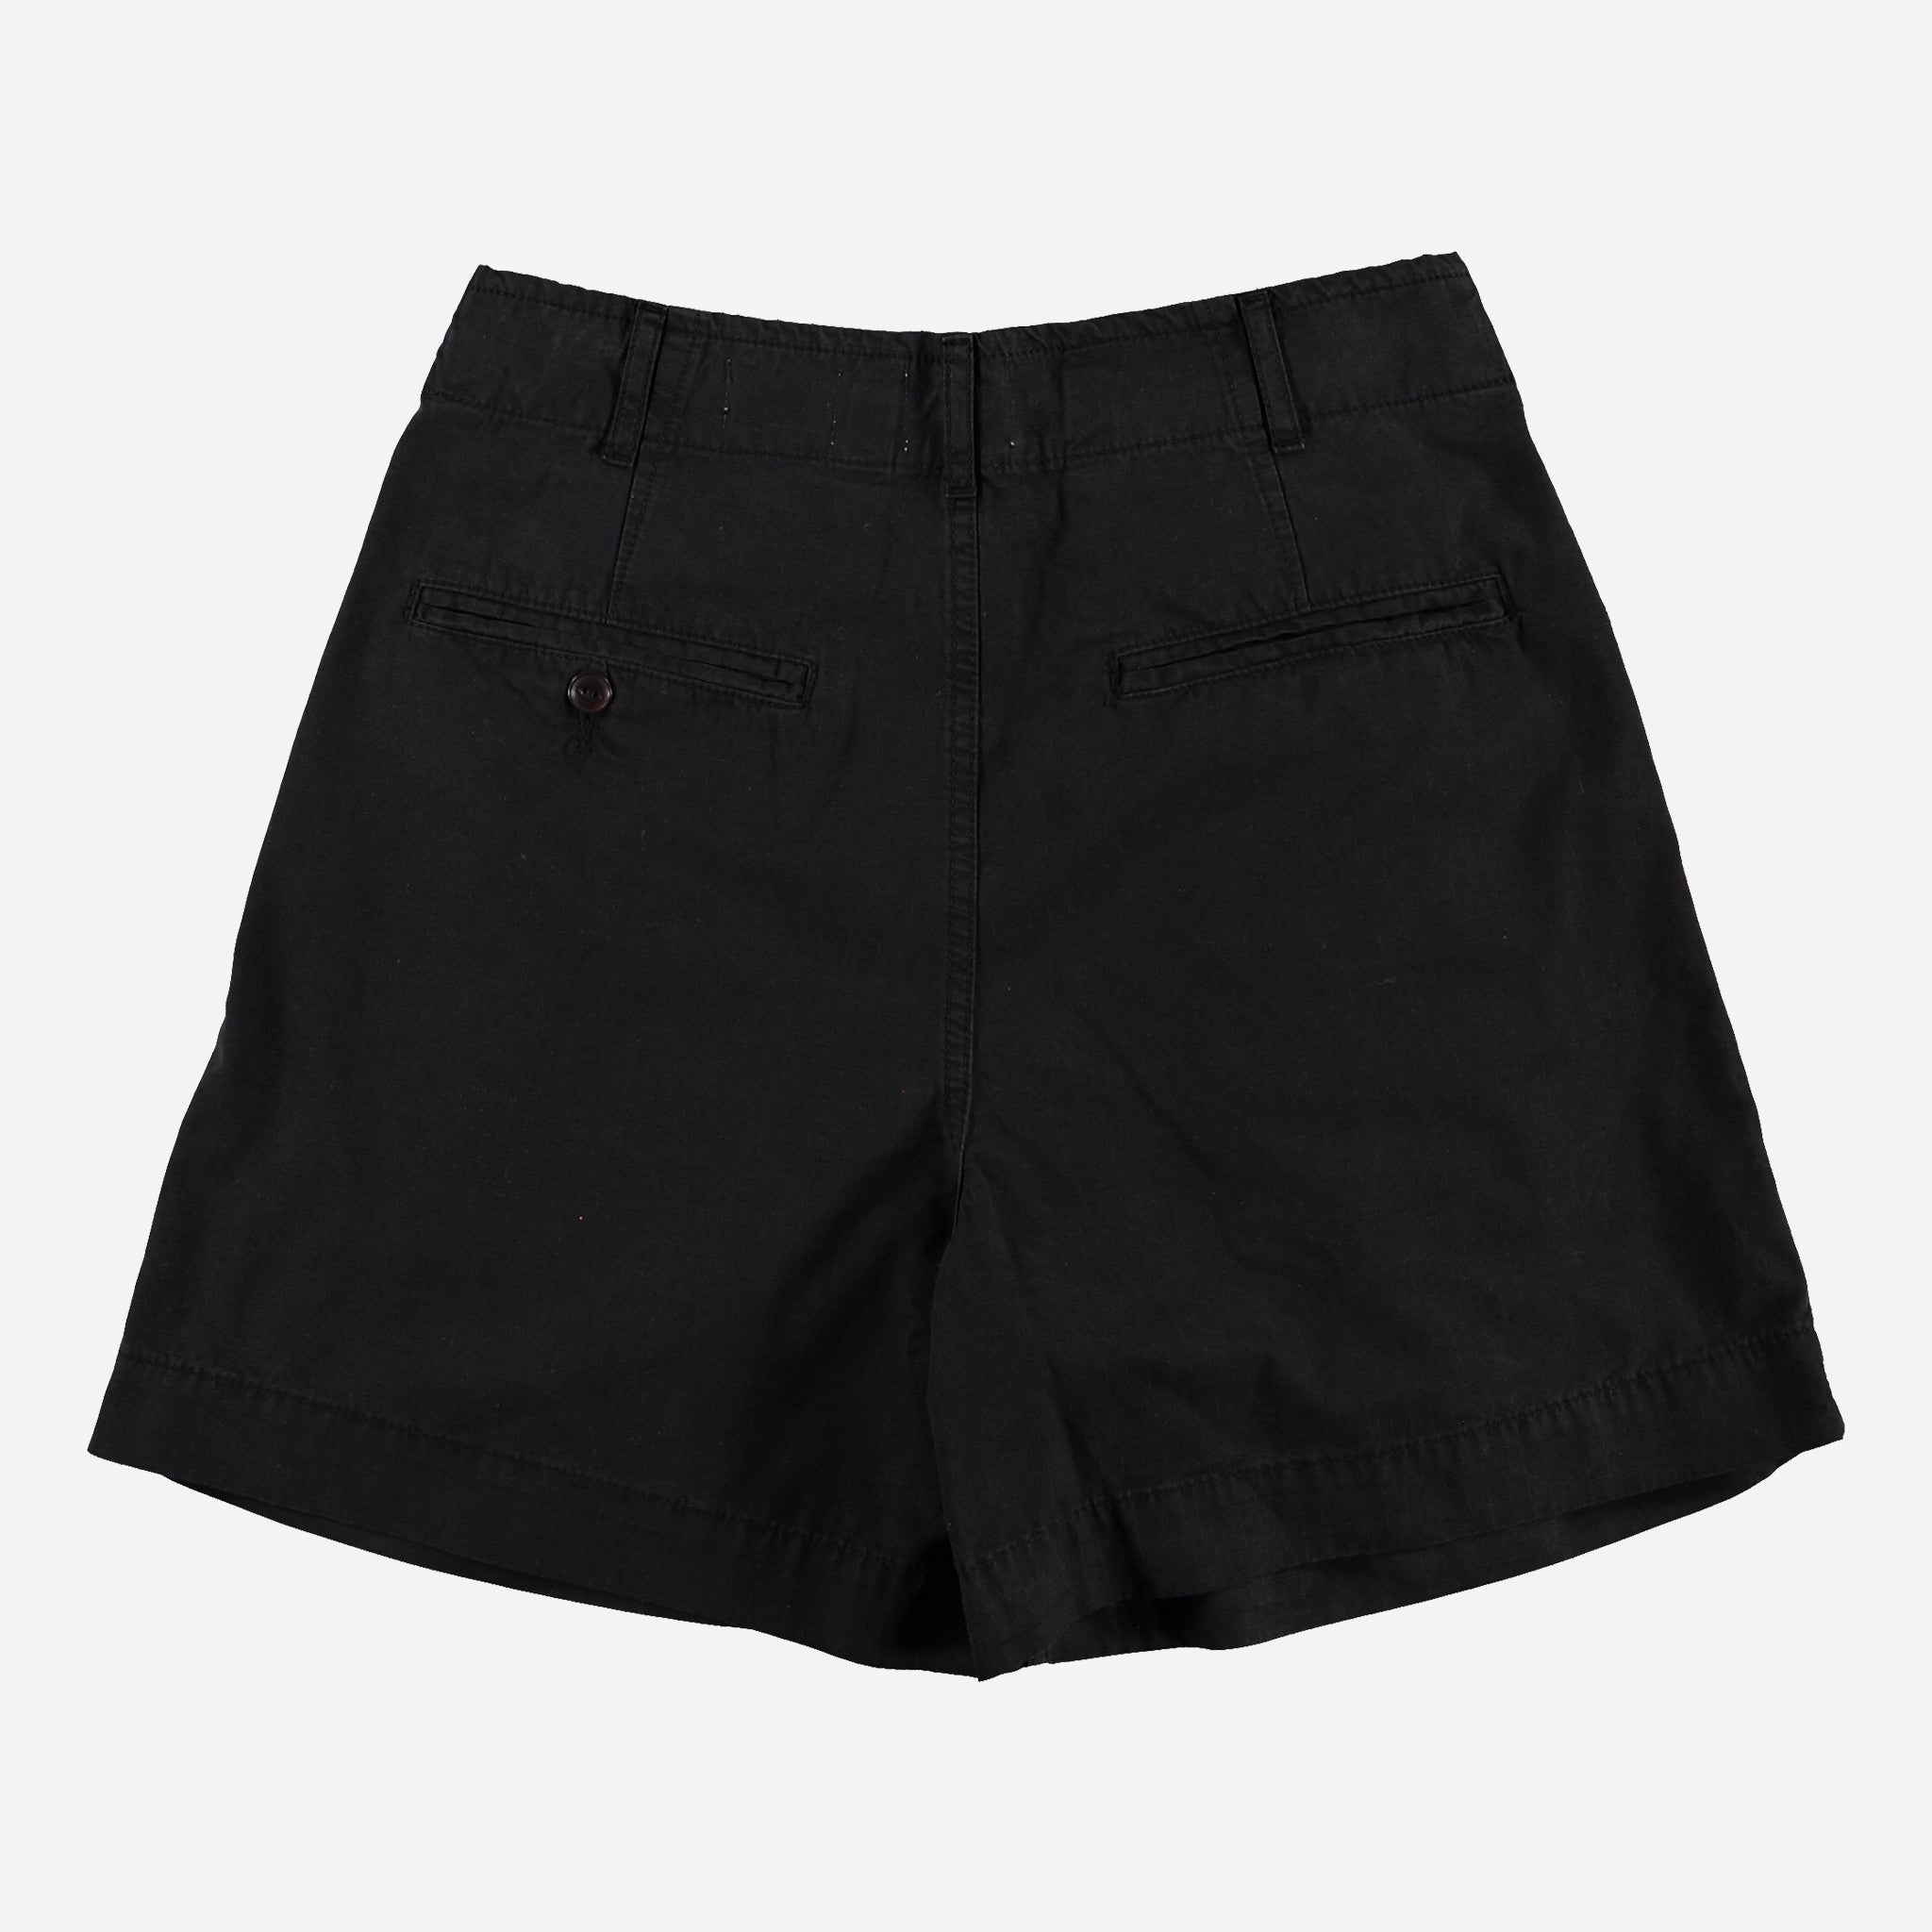 Girls of Dust River Shorts in Black Ripstop